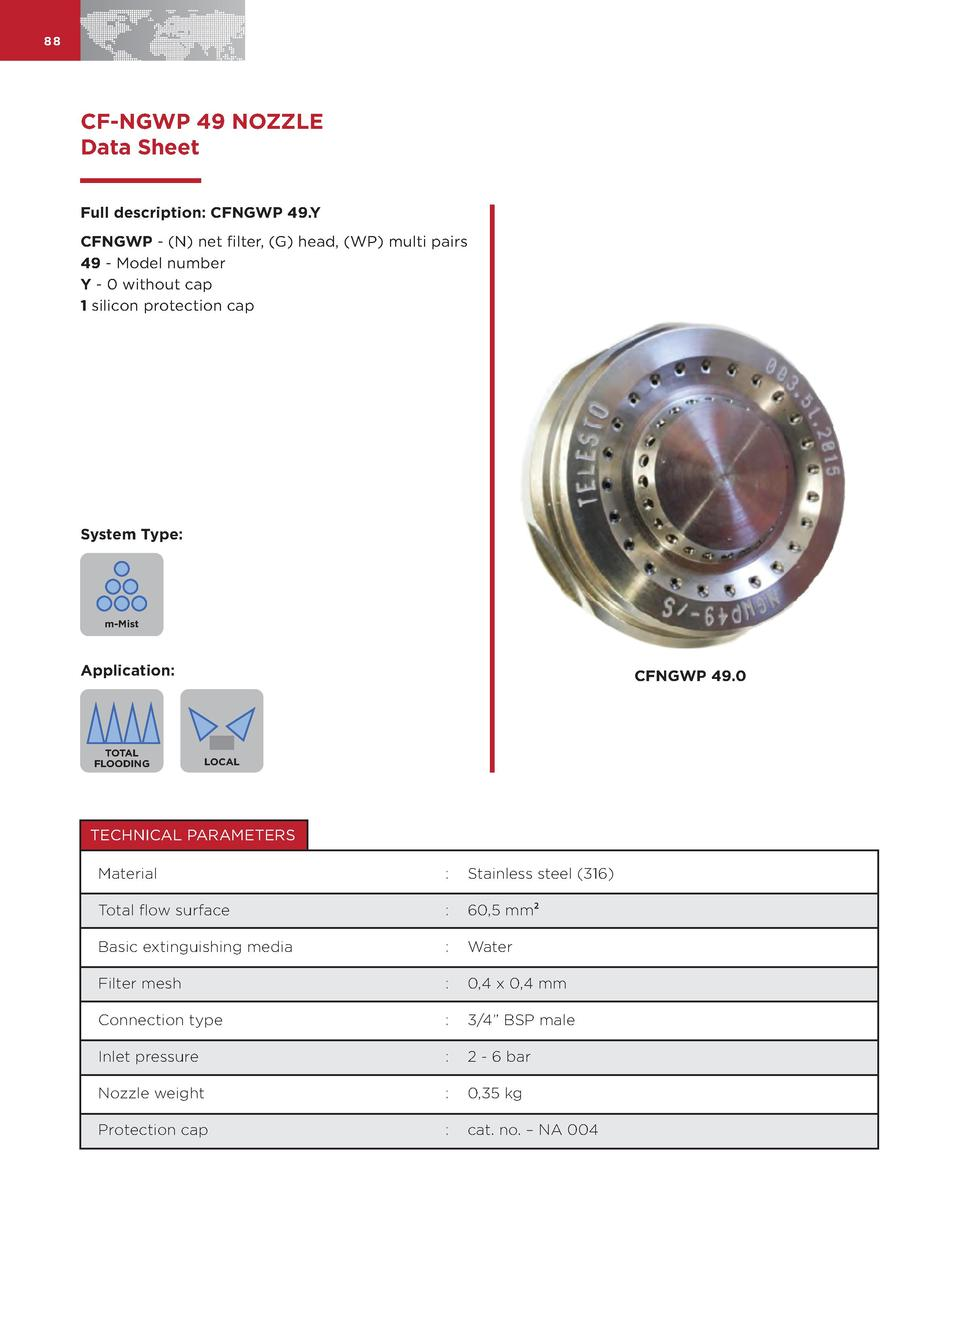 88  CF-NGWP 49 NOZZLE Data Sheet Full description  CFNGWP 49.Y CFNGWP -  N  net filter,  G  head,  WP  multi pairs 49 - Mo...